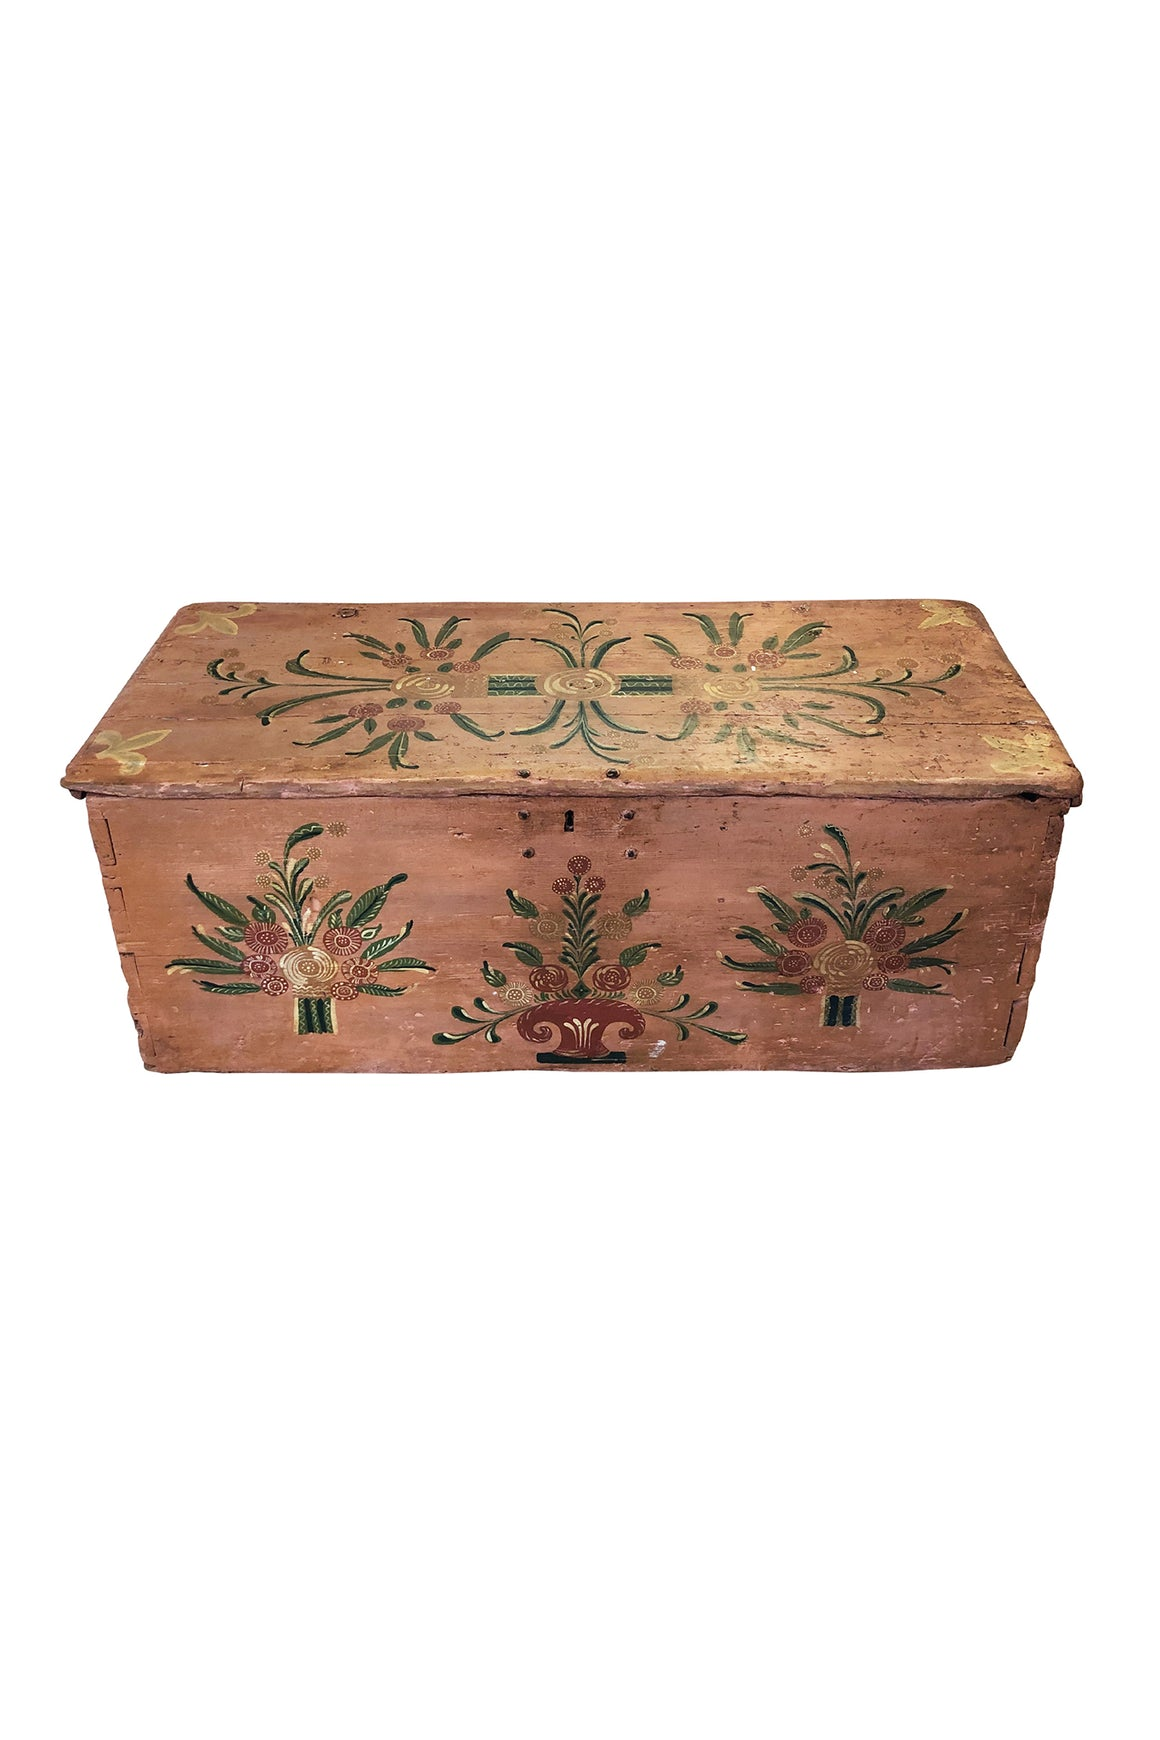 Early 20th Century Handcrafted & Painted Chest